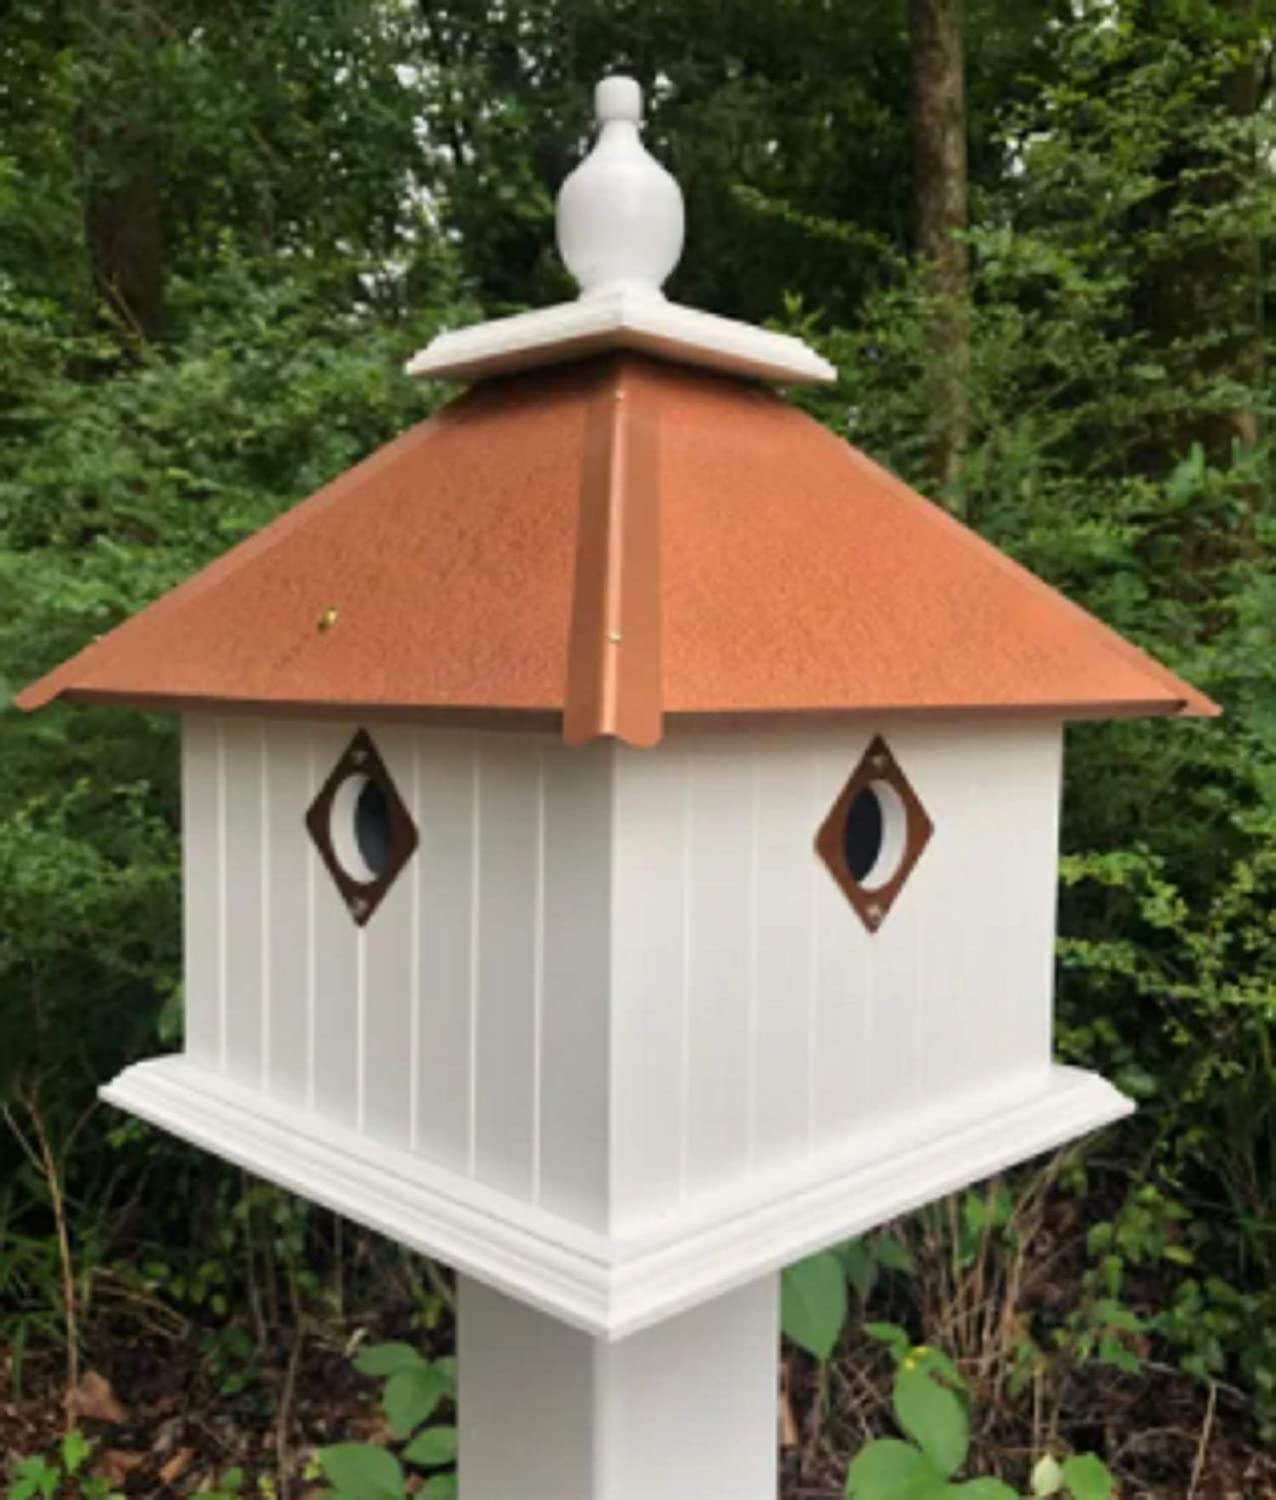 Pour Joy Bird House 2 Holes Handmade Weathe Made The Max 66% OFF in Discount is also underway of USA